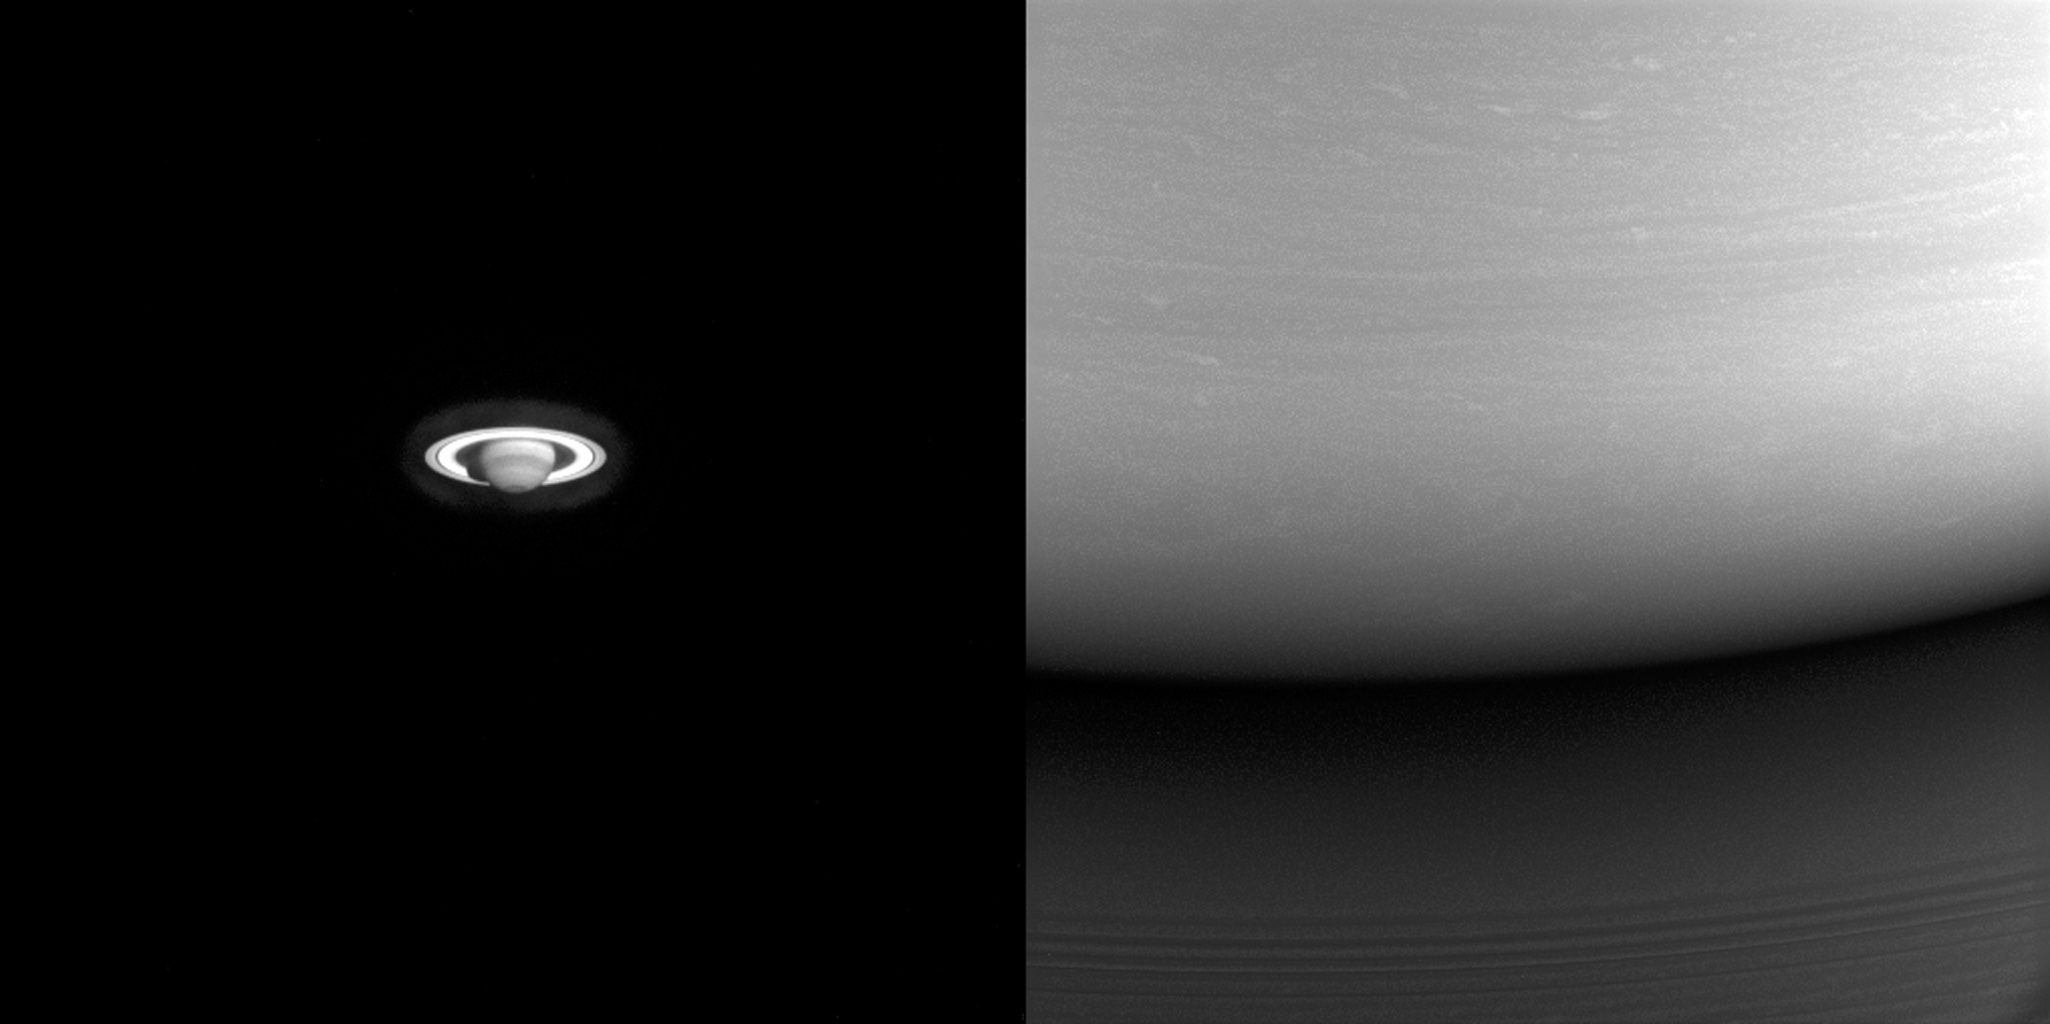 These two images illustrate just how far NASA's Cassini spacecraft traveled to get to Saturn. At left, one of the earliest images taken of the ringed planet. At right, one of Cassini's final images of Saturn.